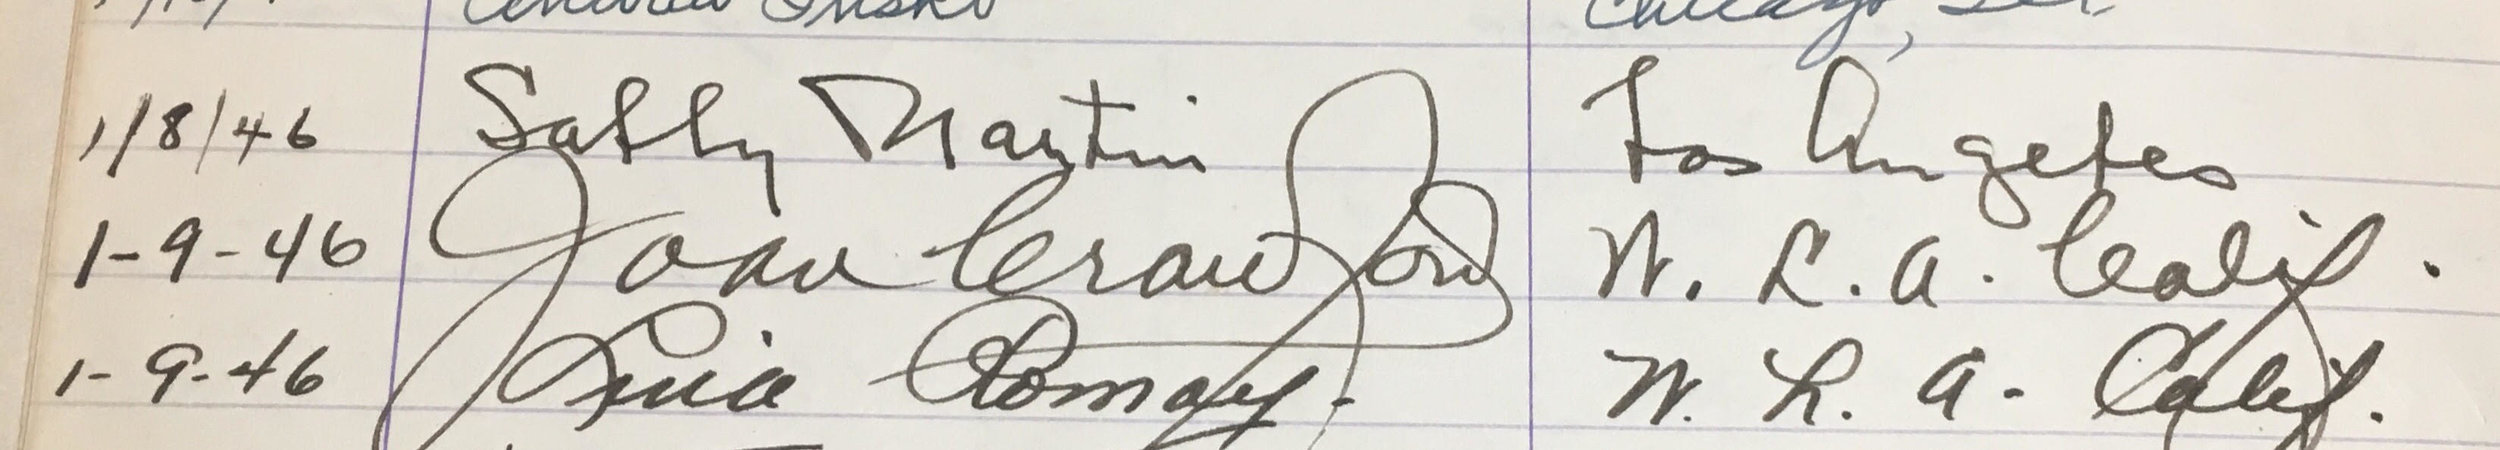 Joan Crawford's signature from Joseff's studio guest book dated January 9, 1946